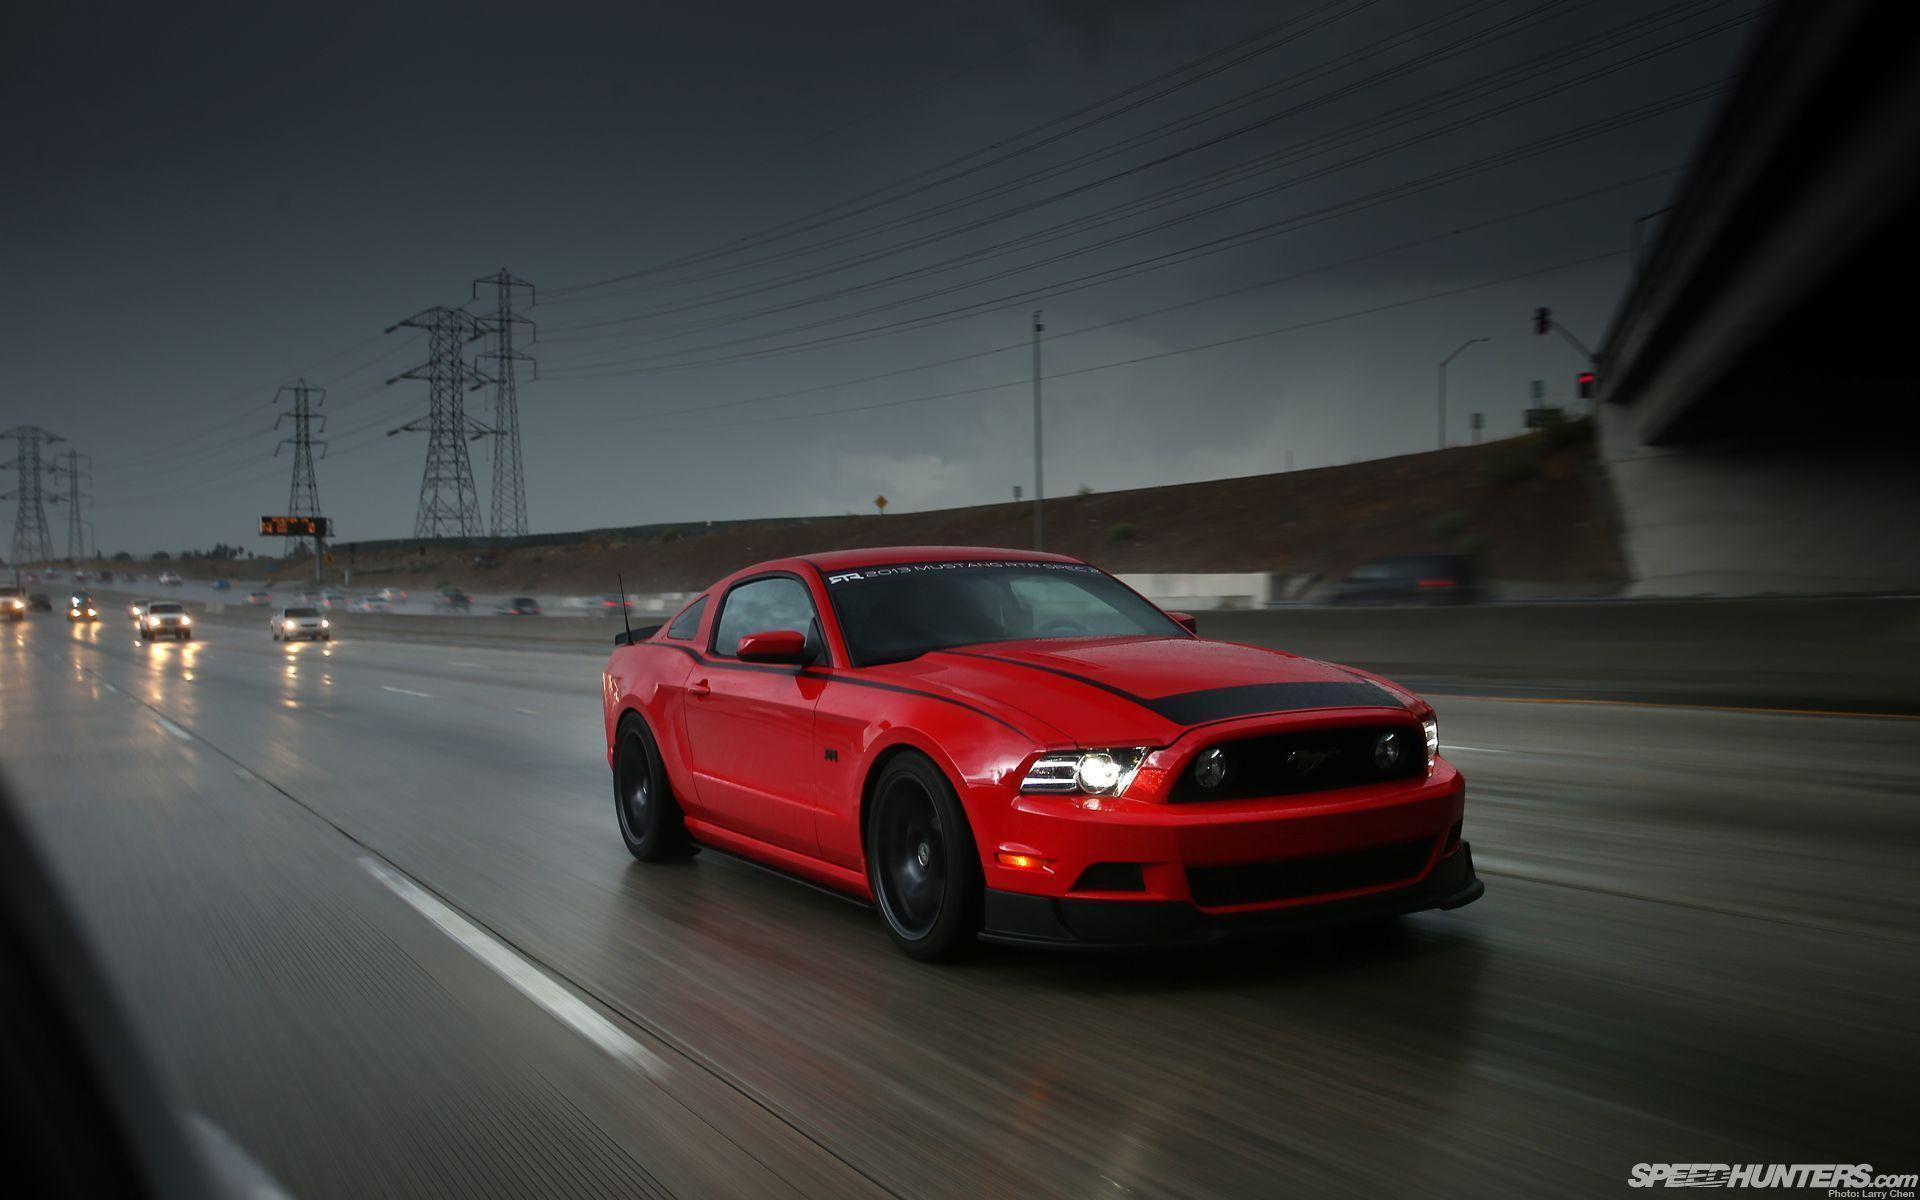 Mustang Wallpaper Hd Background 9 HD Wallpapers | www ...